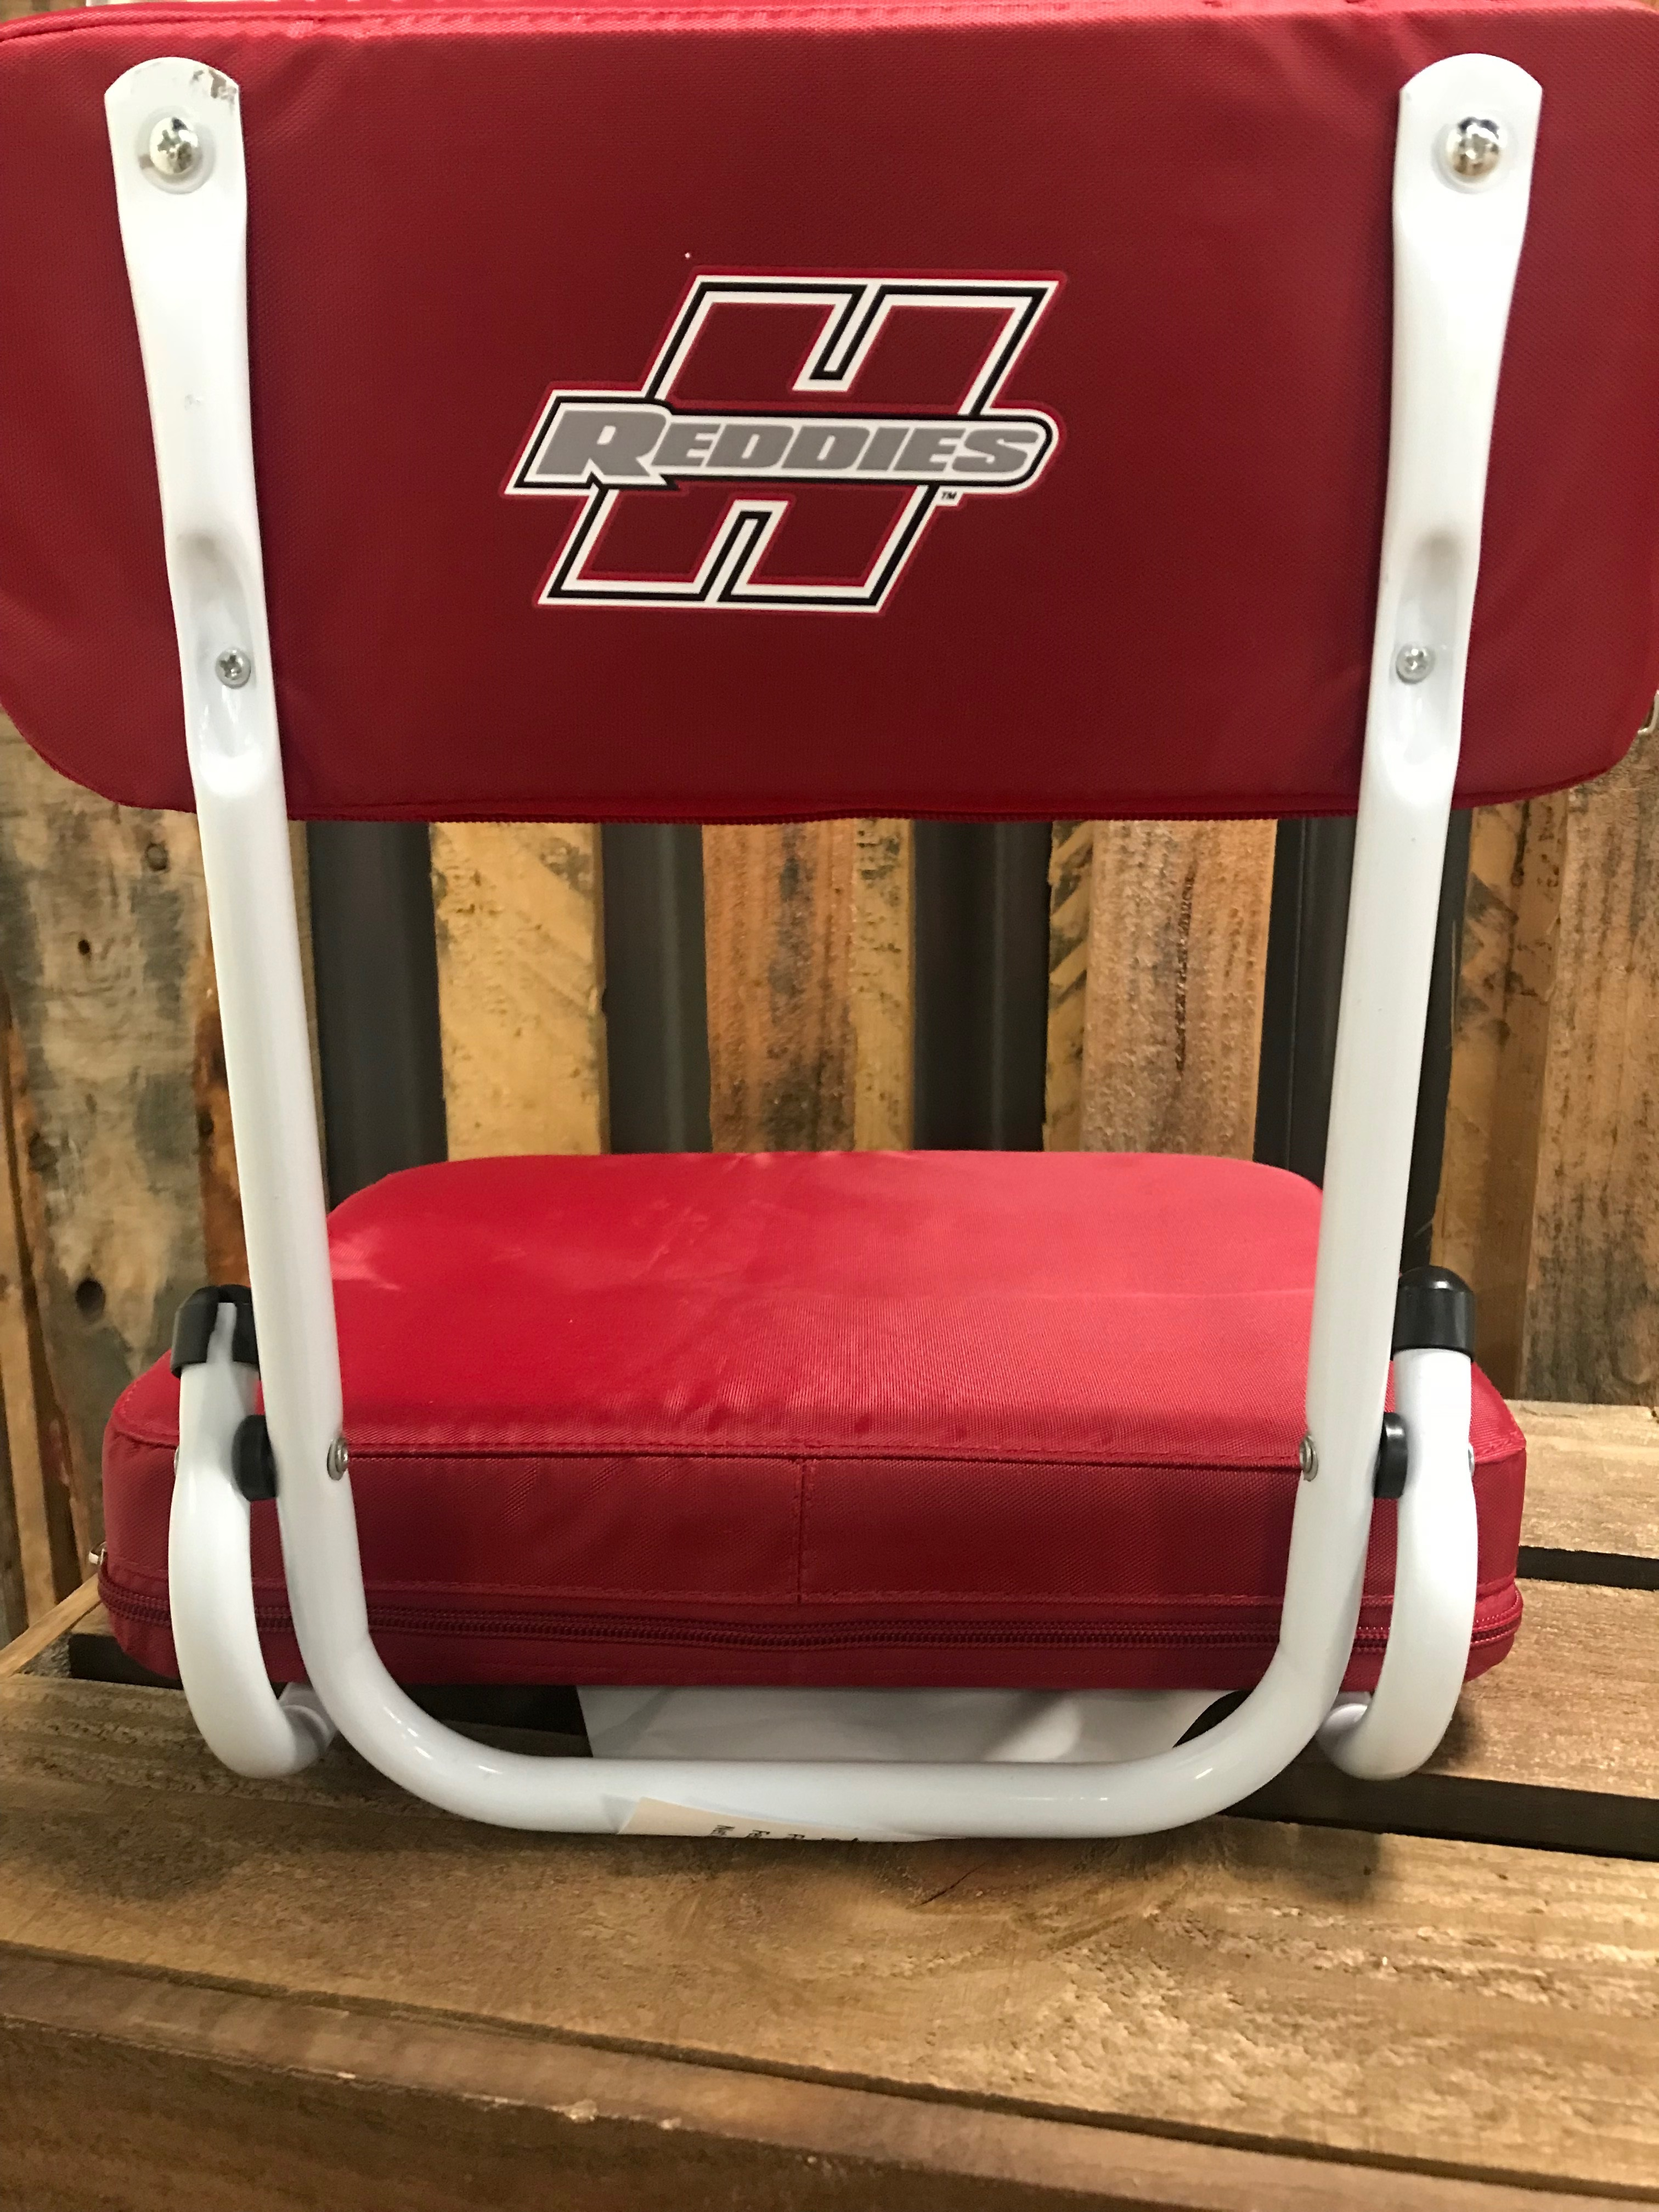 Reddies Stadium Chair